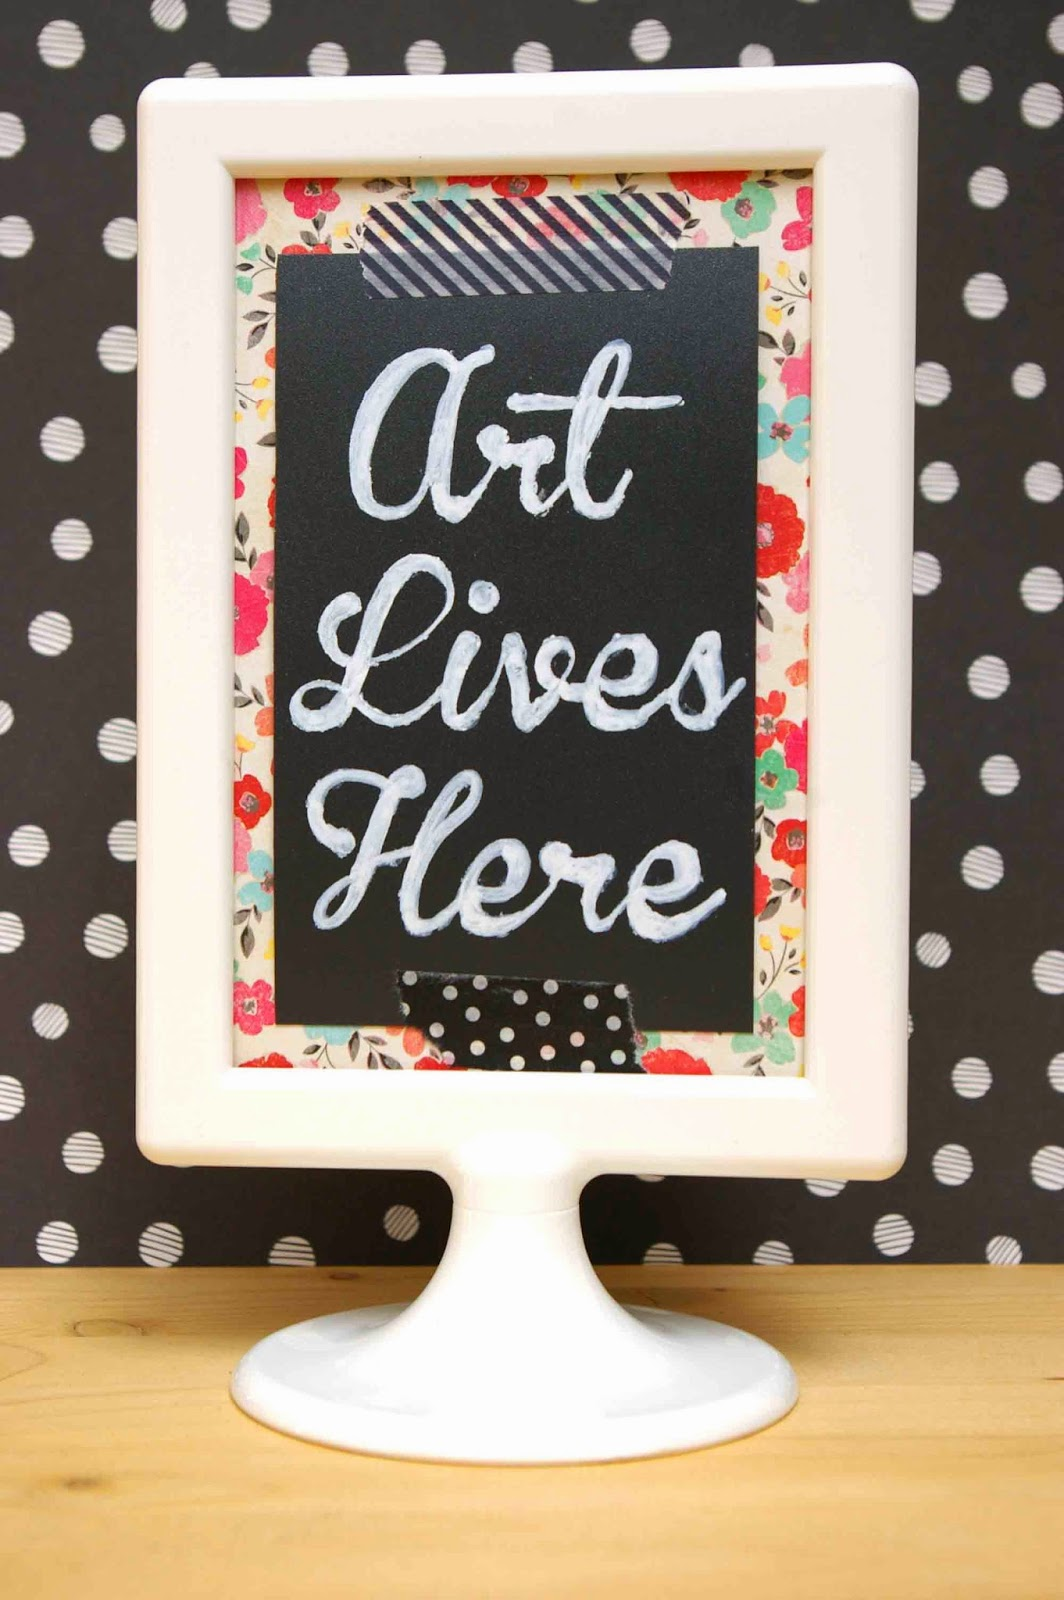 SRM Stickers Blog - Chalkboard Vinyl Decor by Lorena - #vinyl #chalkboard #decor